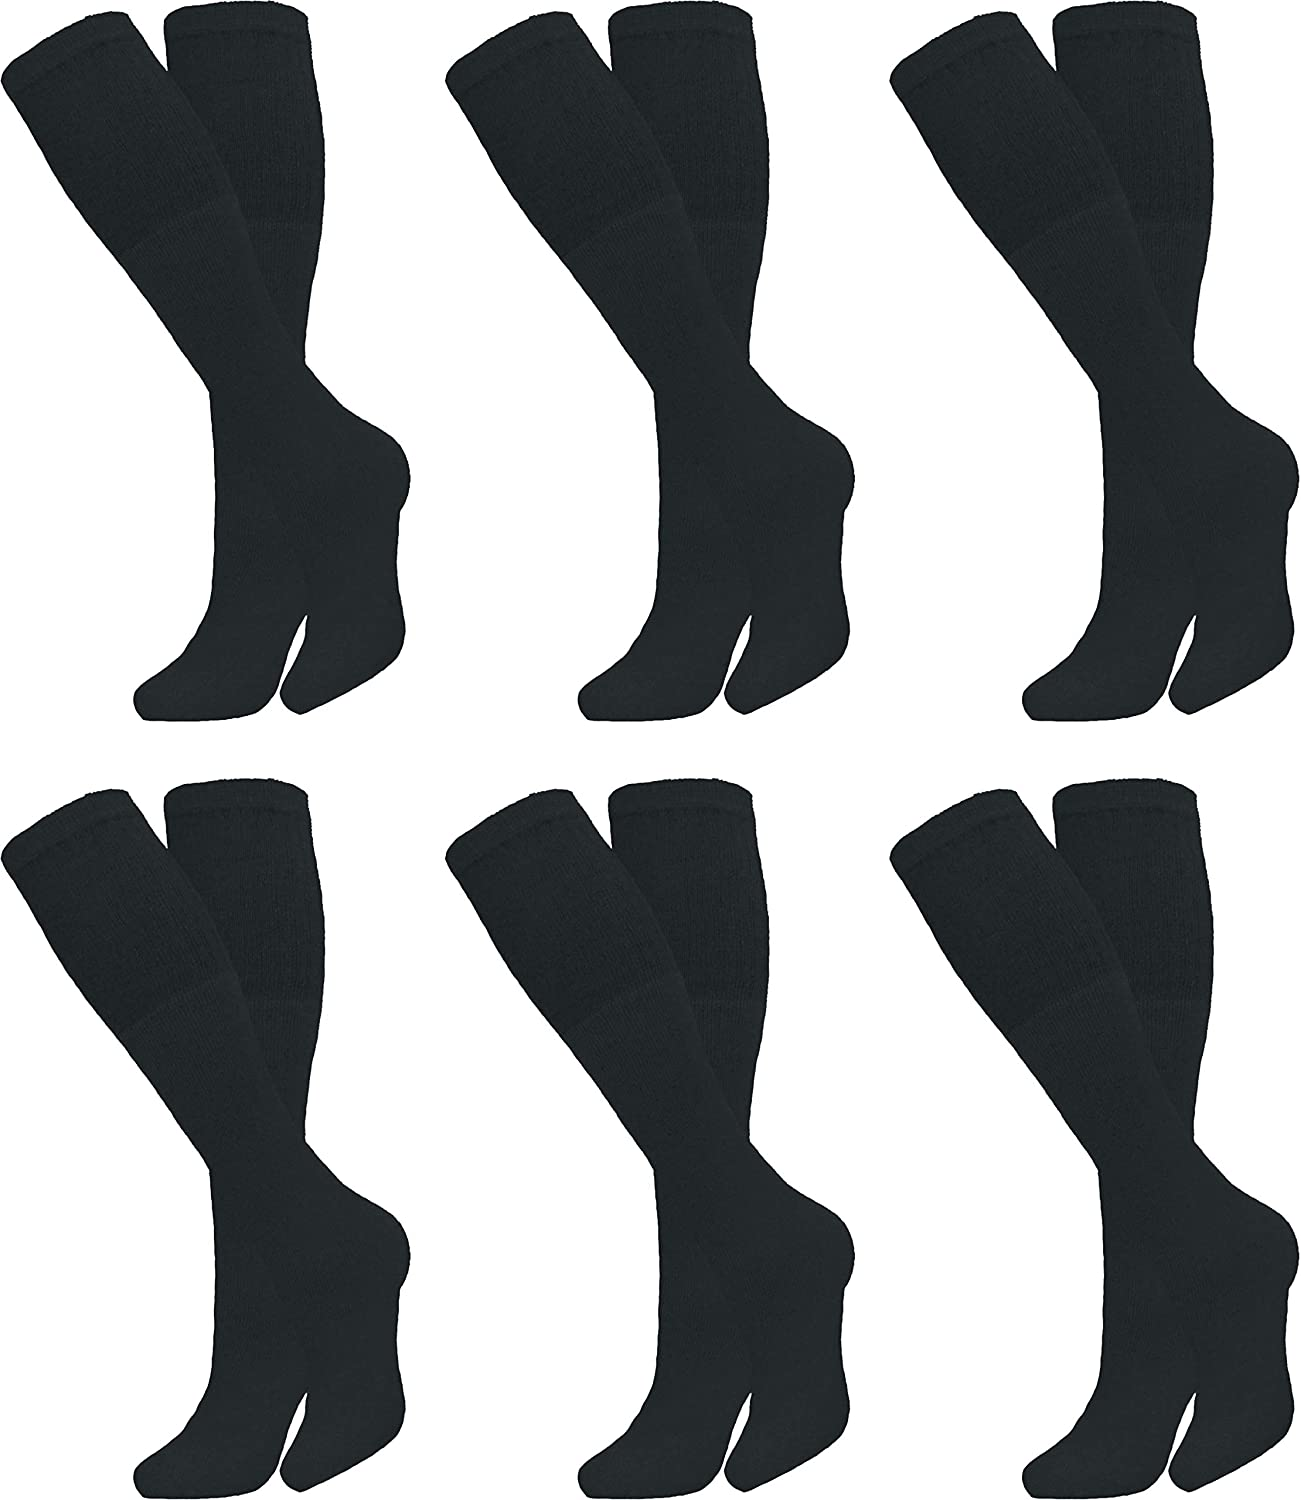 Diamond Star Men's 6 Pack Athletic Tube Socks Running Sports OVER THE CALF Full Cushioned Premium Soft Cotton Big and Tall